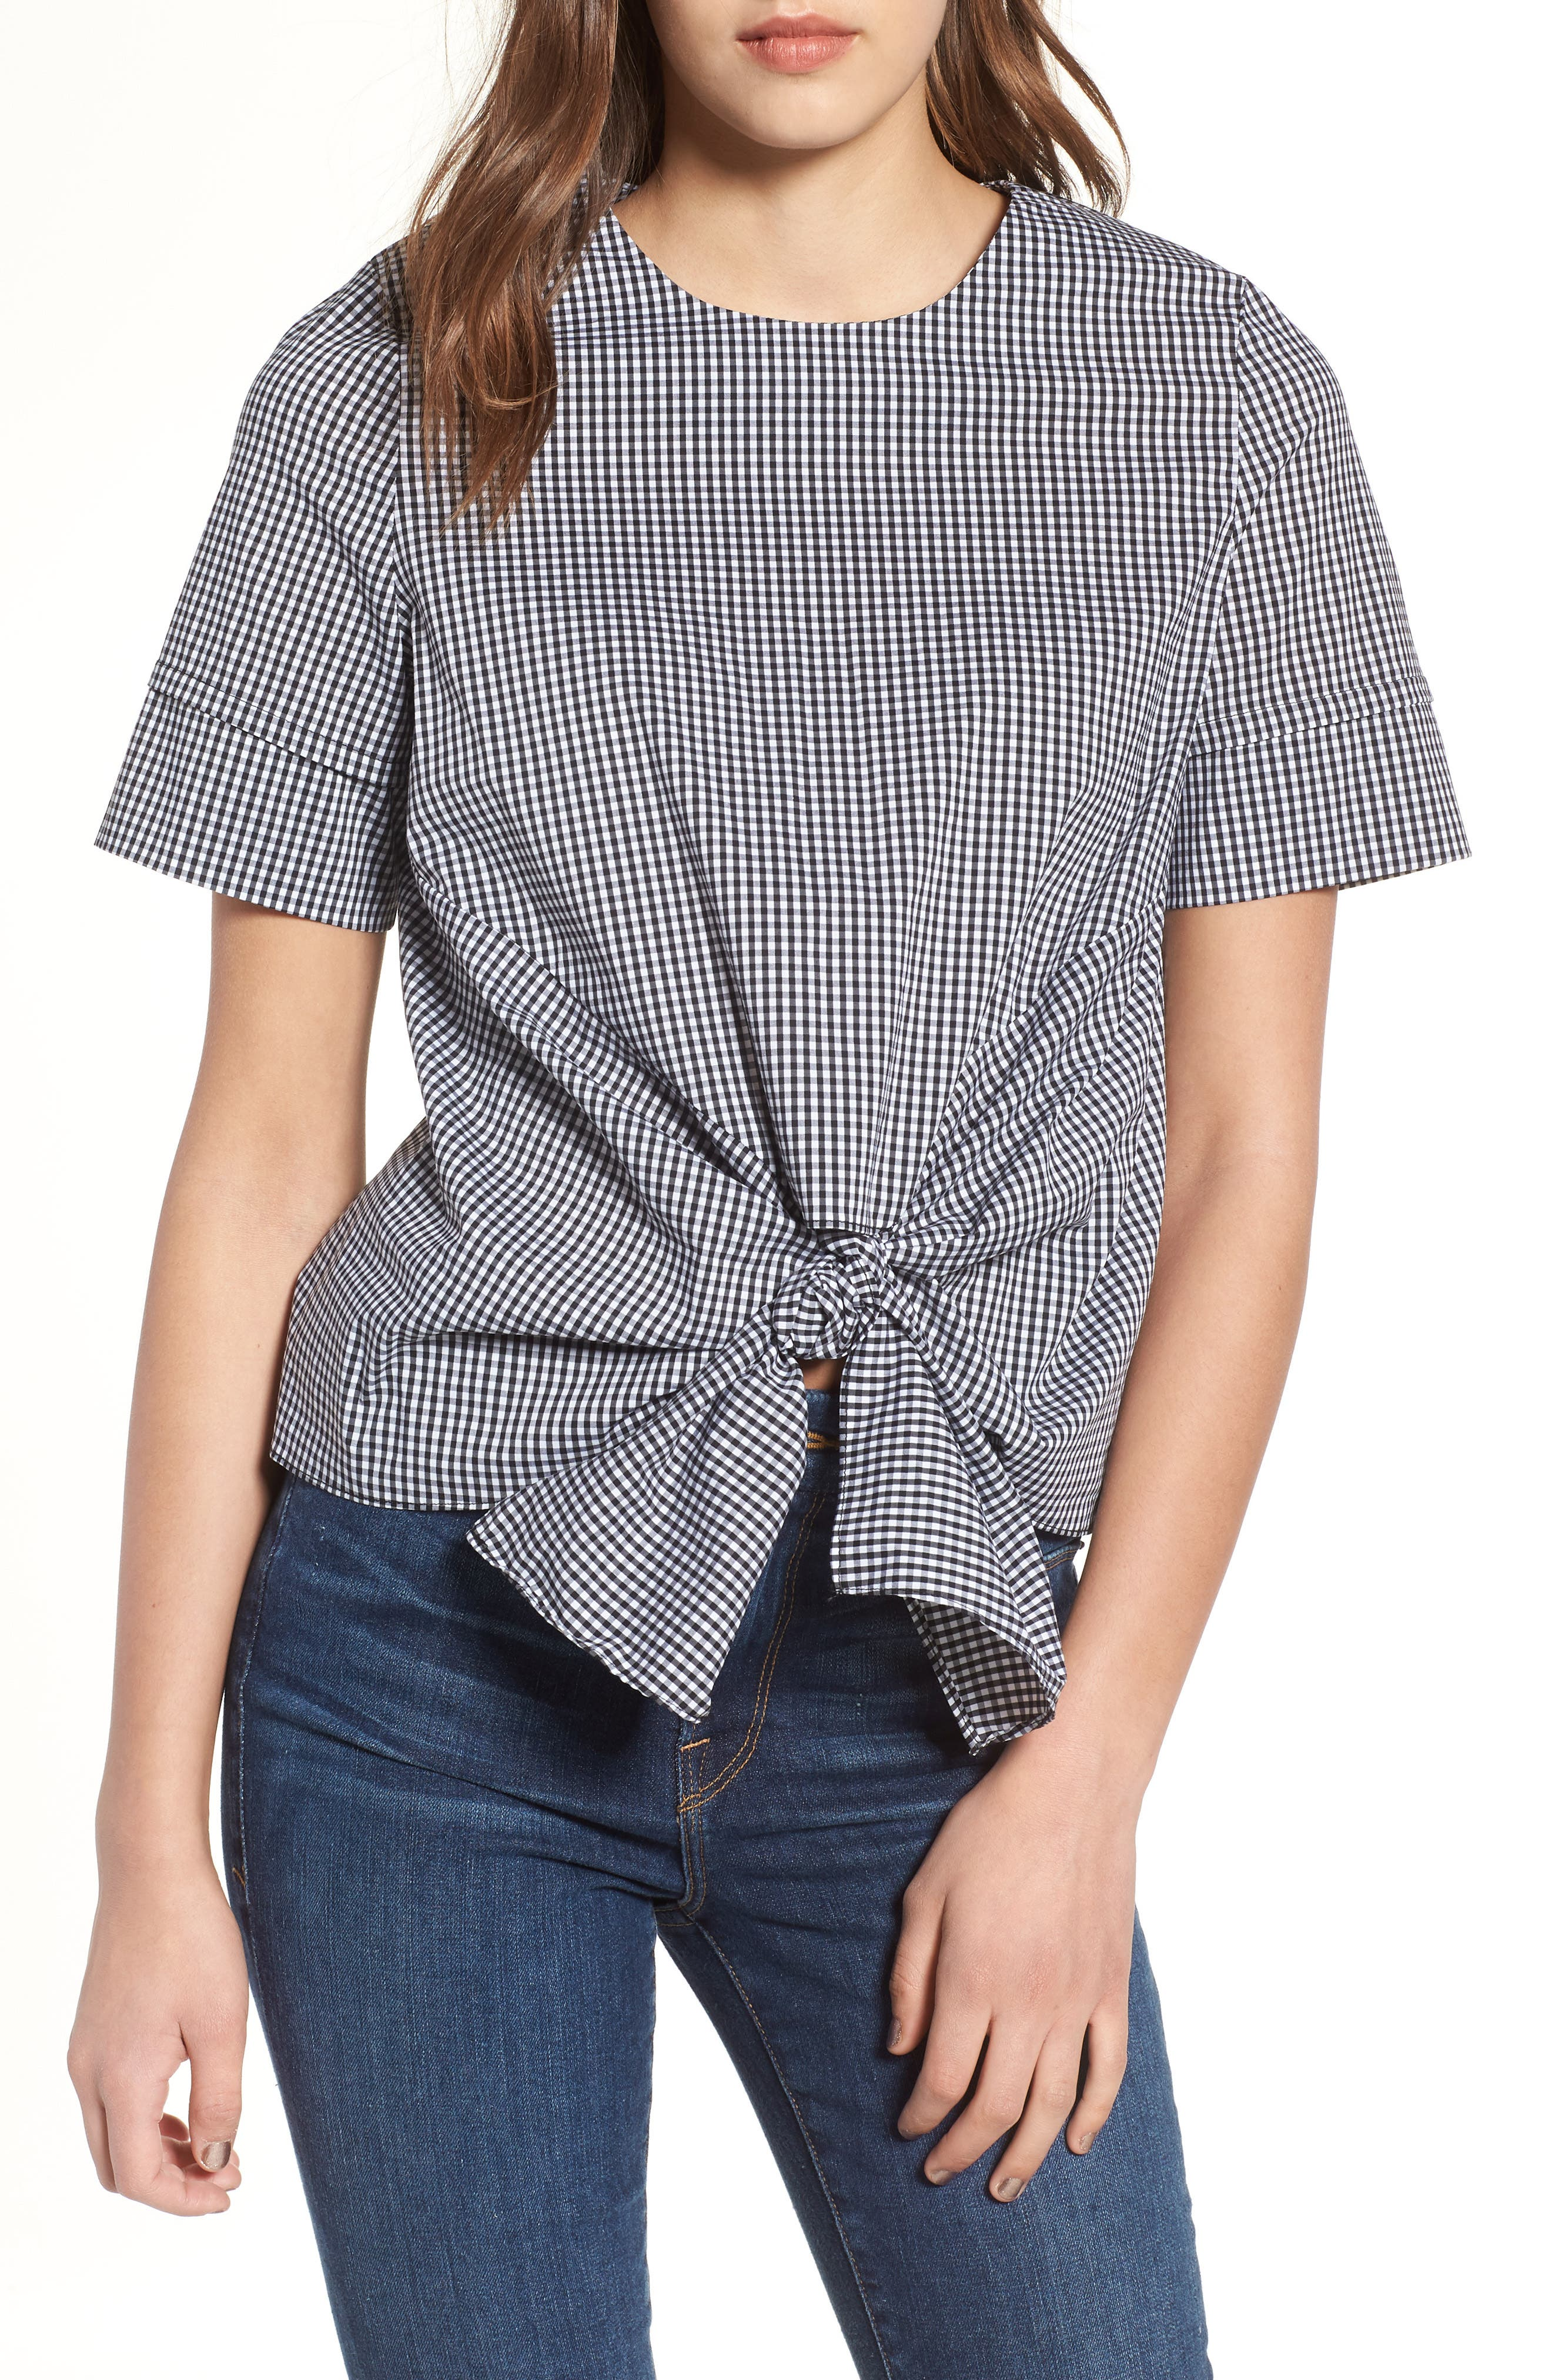 Bishop + Young Gingham Tie Front Blouse,                             Main thumbnail 1, color,                             Gingham